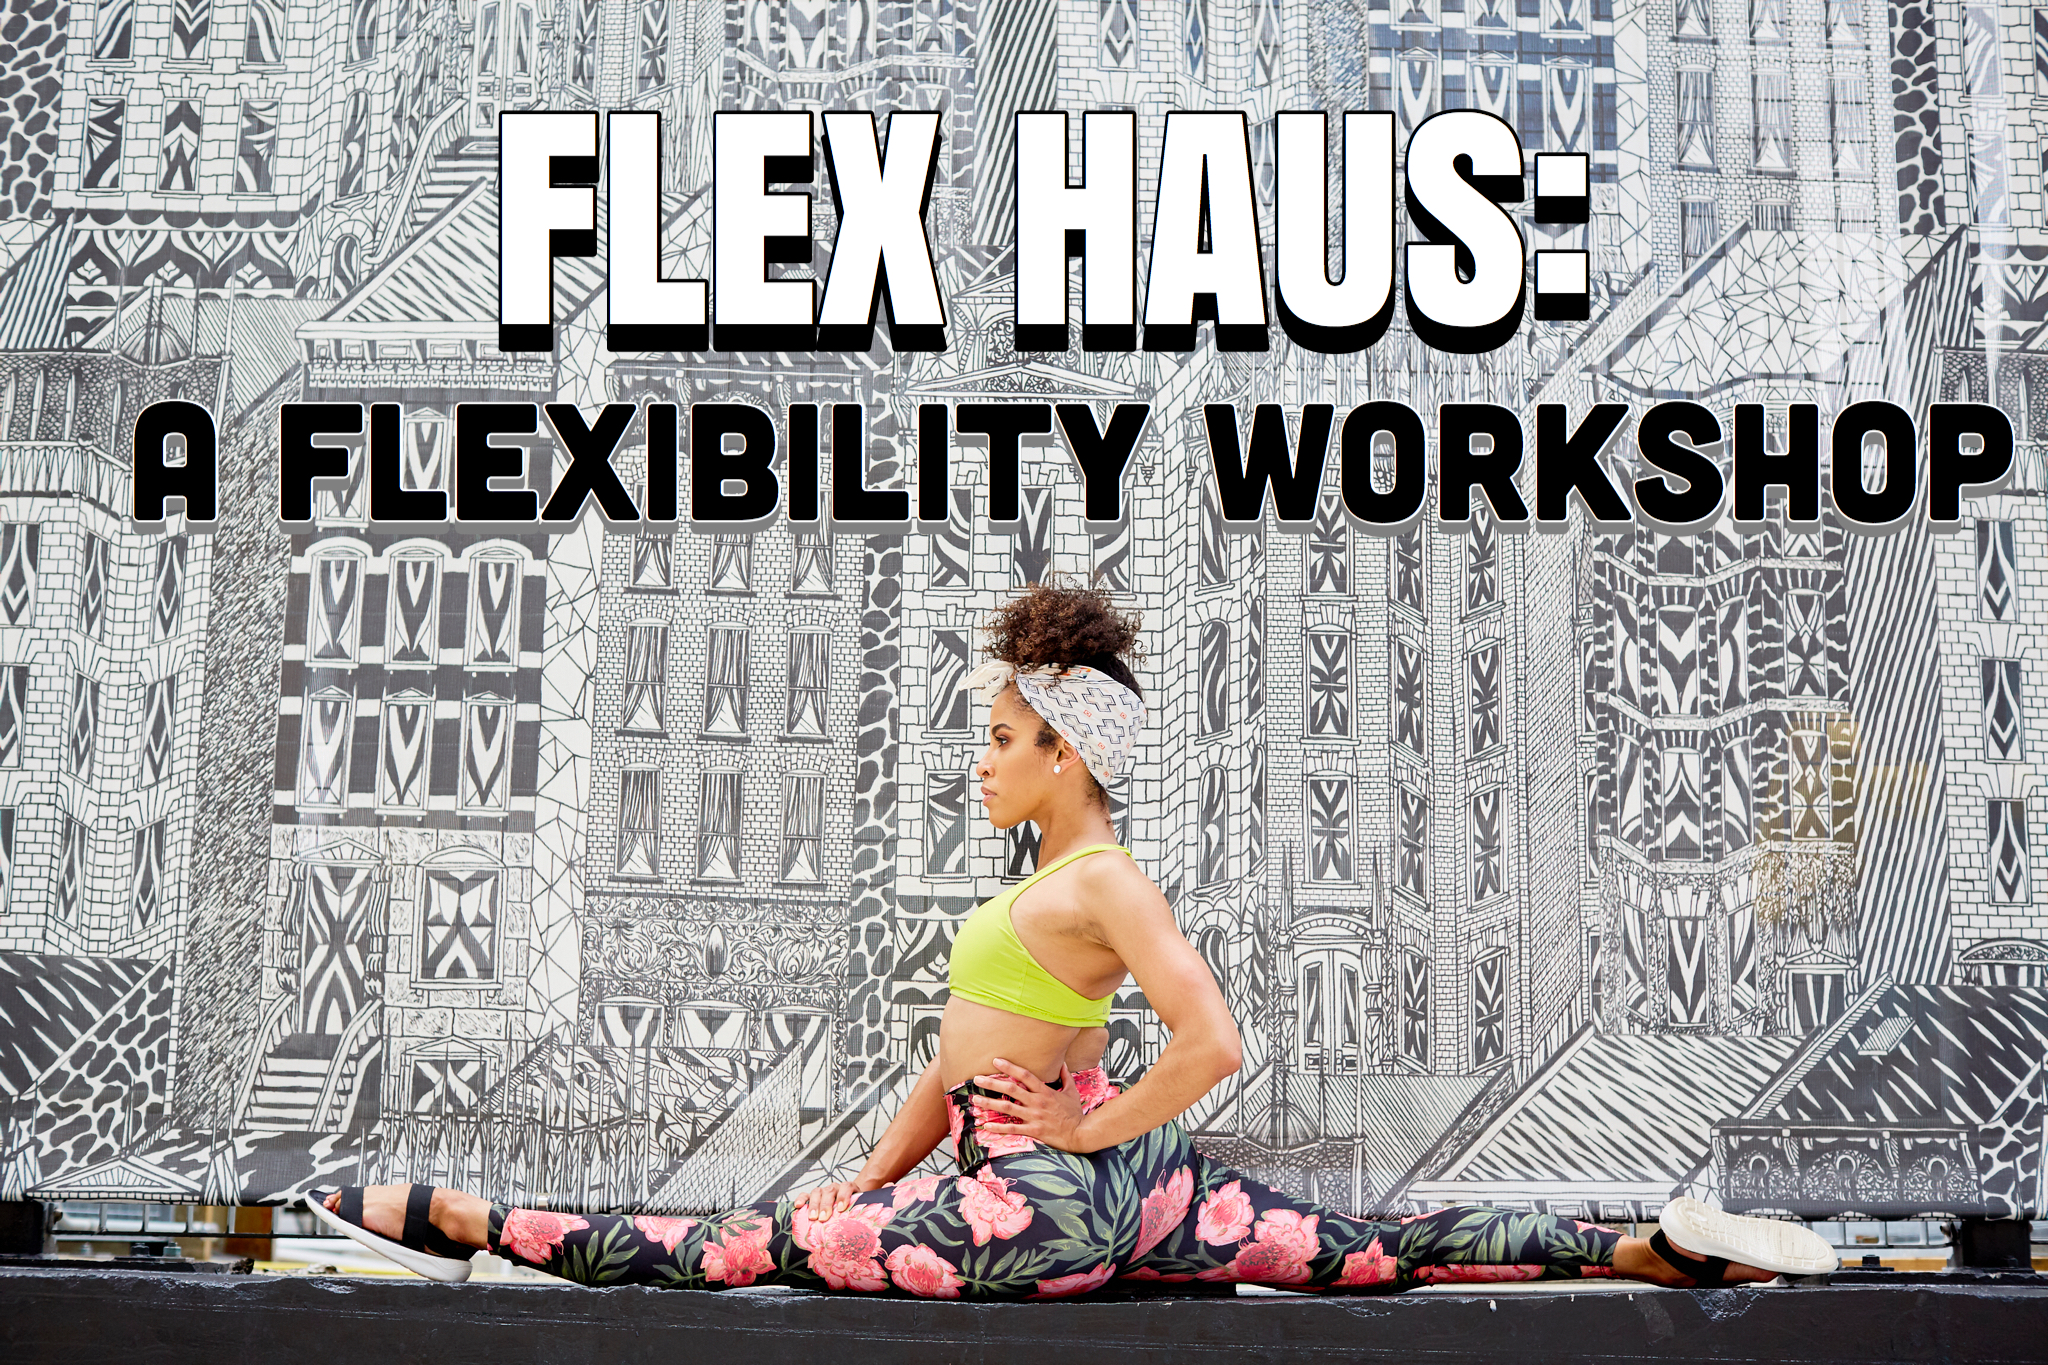 Whether you are a movement enthusiast, dancer, professional athlete, cross-fitter or cyclist, we can all agree flexibility is a necessity to achieve fitness and professional goals. Stretching is not only vital to your recovery, it also proves helpful while advancing in any strength exercise.  Come learn how to improve your flexibility in this 90 minute workshop! In this dynamic workshop, we will breakdown exercises together with modifications provided to keep you intrigued. Walk away with techniques that will allow increased range of motion for your hips to squat deeper, lunge lower, back bend safely, and most importantly, move pain free.  Visit us @ energi.life/schedule